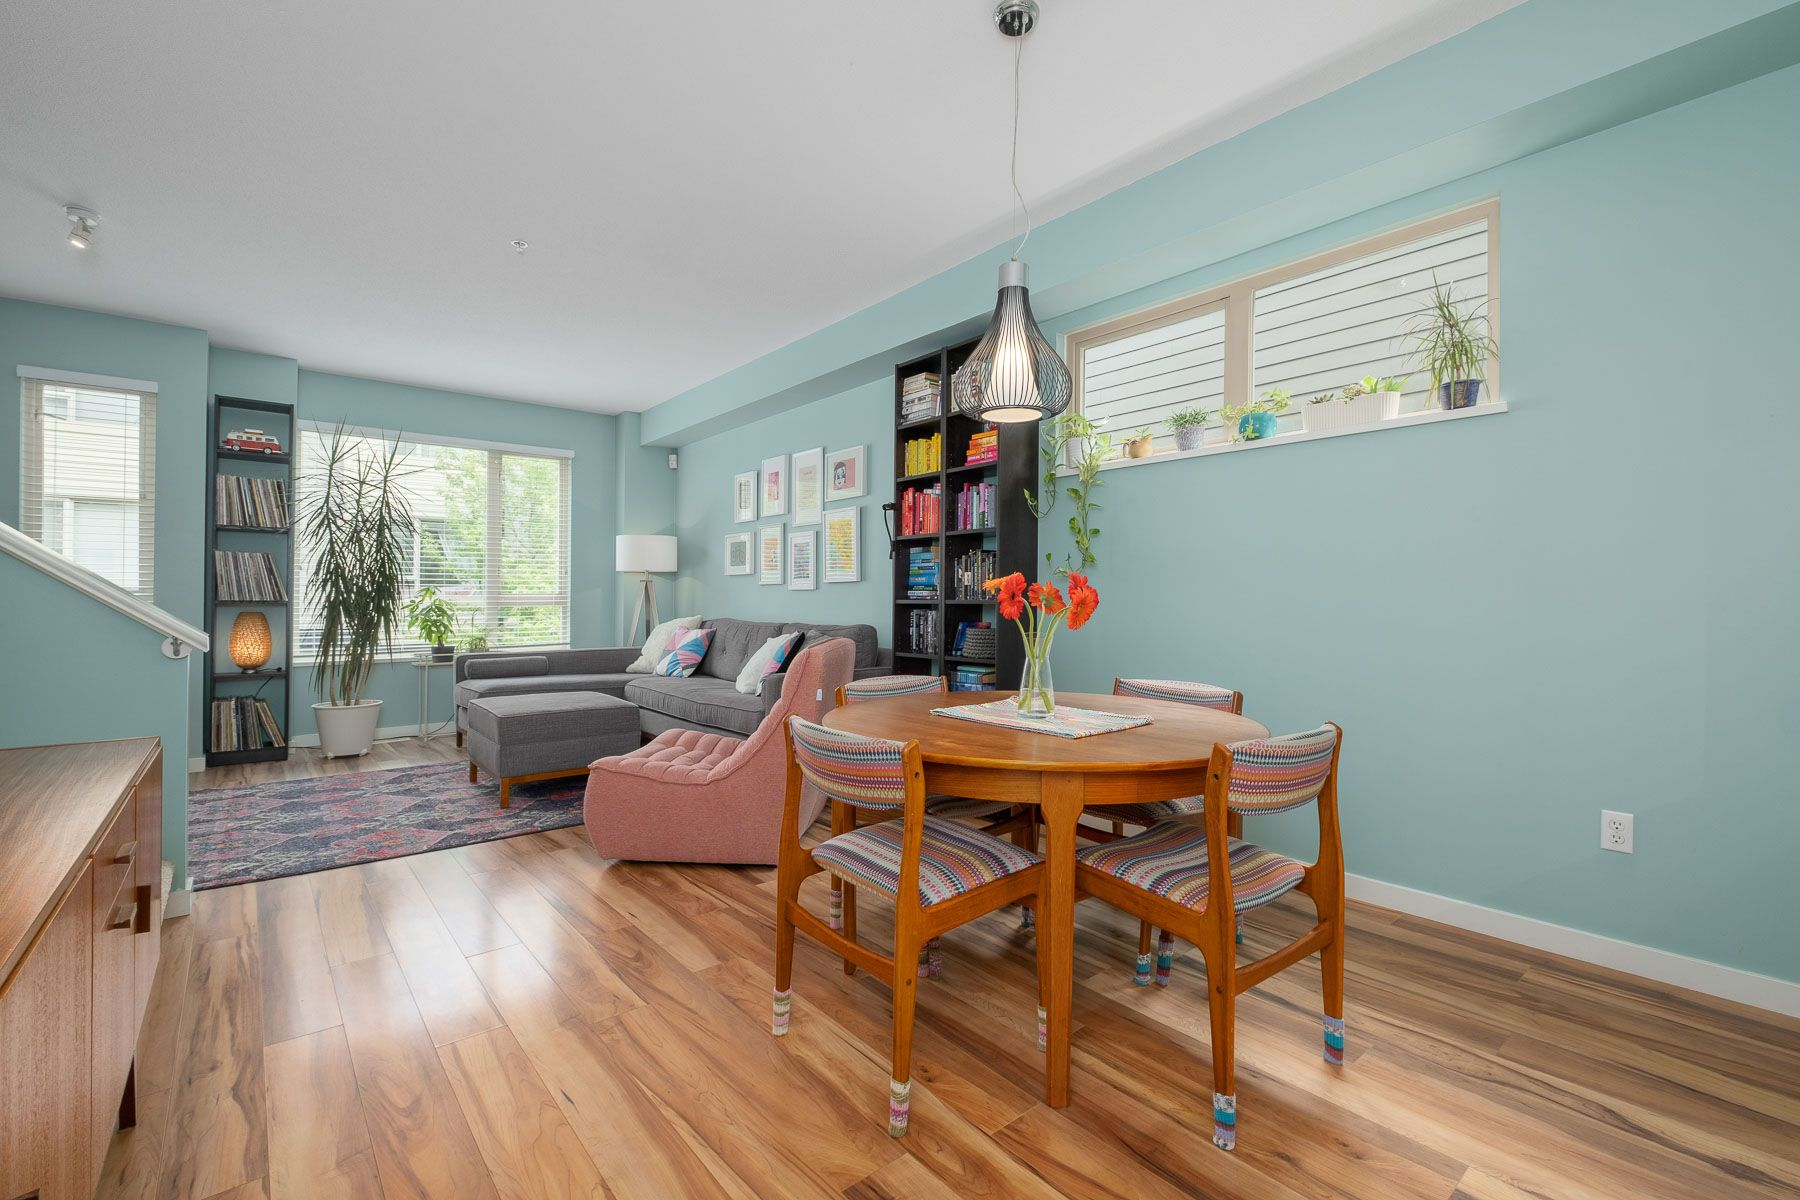 """Photo 8: Photos: 28 9229 UNIVERSITY Crescent in Burnaby: Simon Fraser Univer. Townhouse for sale in """"SERENITY"""" (Burnaby North)  : MLS®# R2589602"""